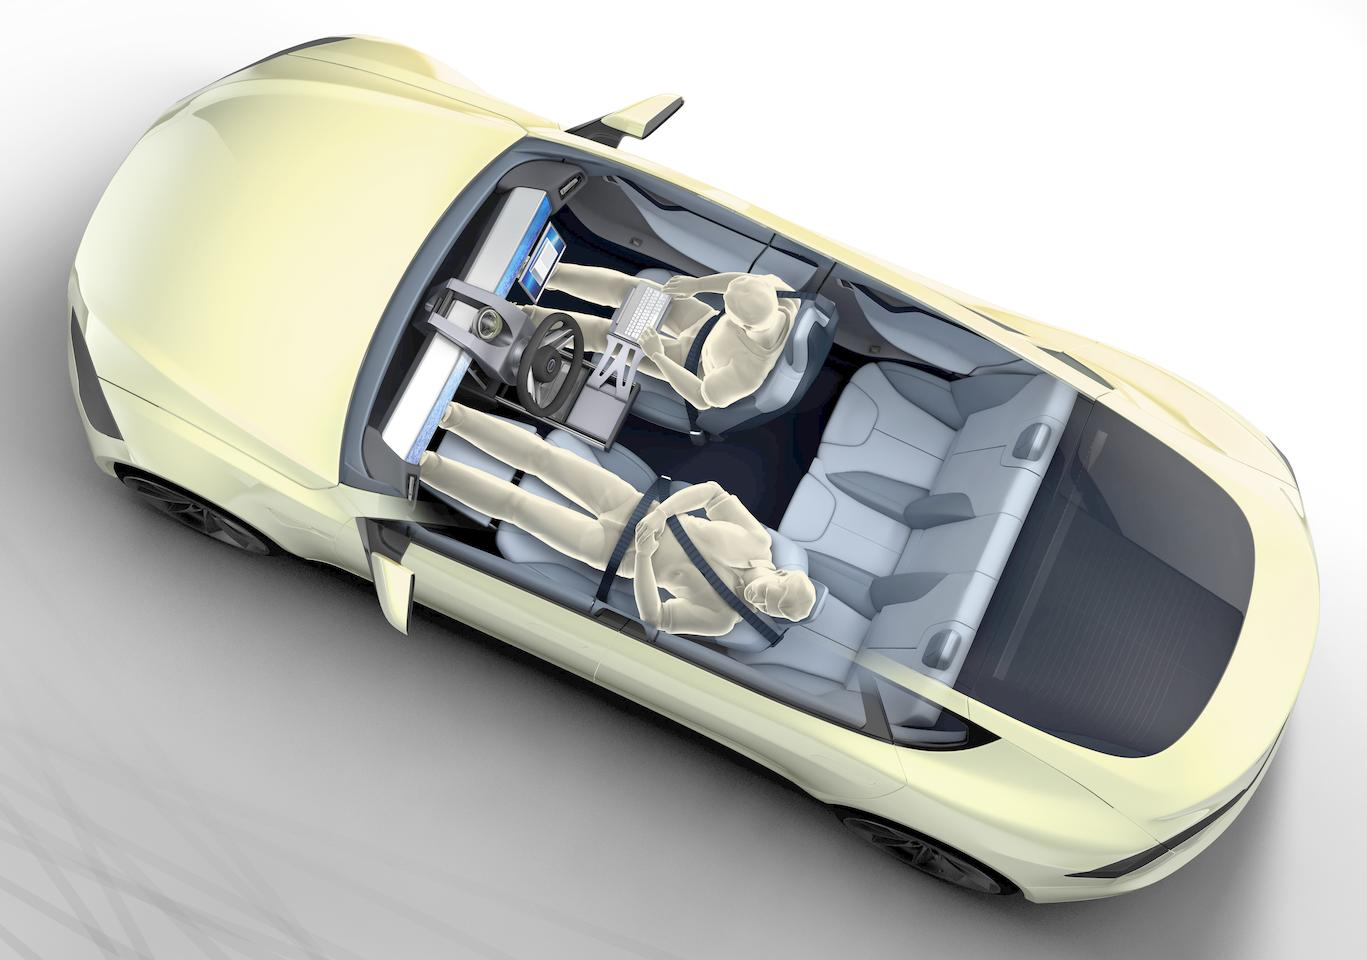 The Rinspeed XchangE concept's focus is on the interior of a fully autonomous car